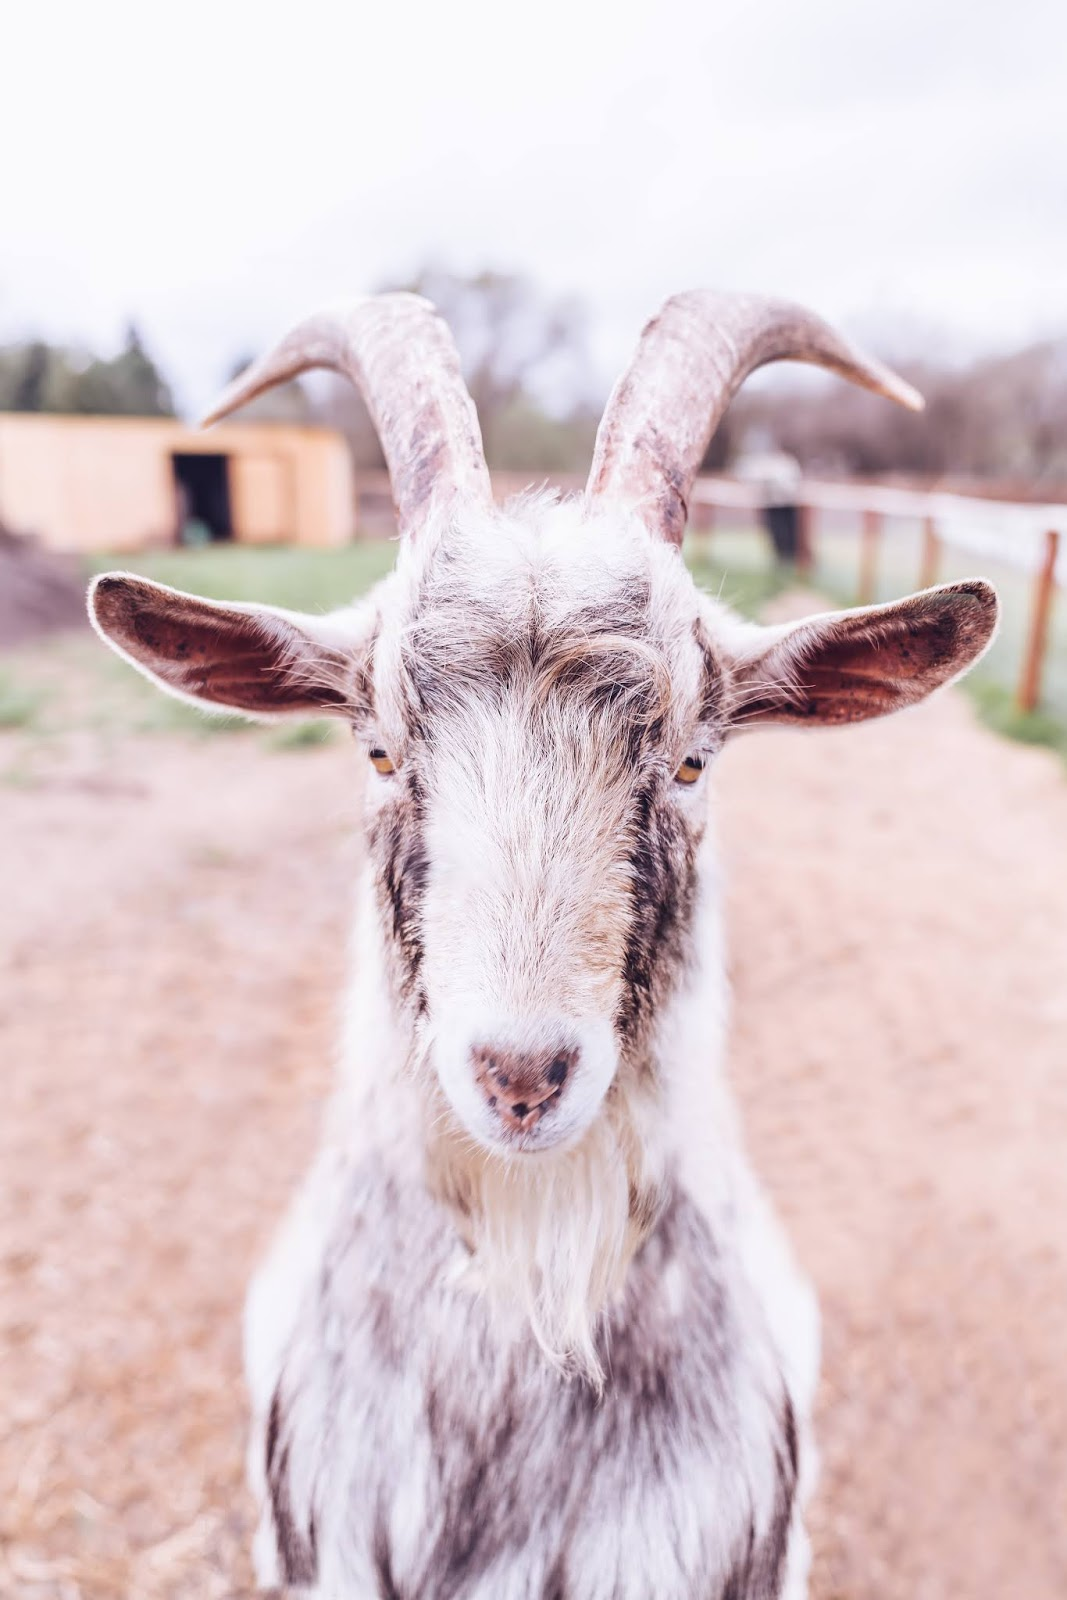 Free photograph of a white billy goat on a farm. Rustic farmhouse decor photography.